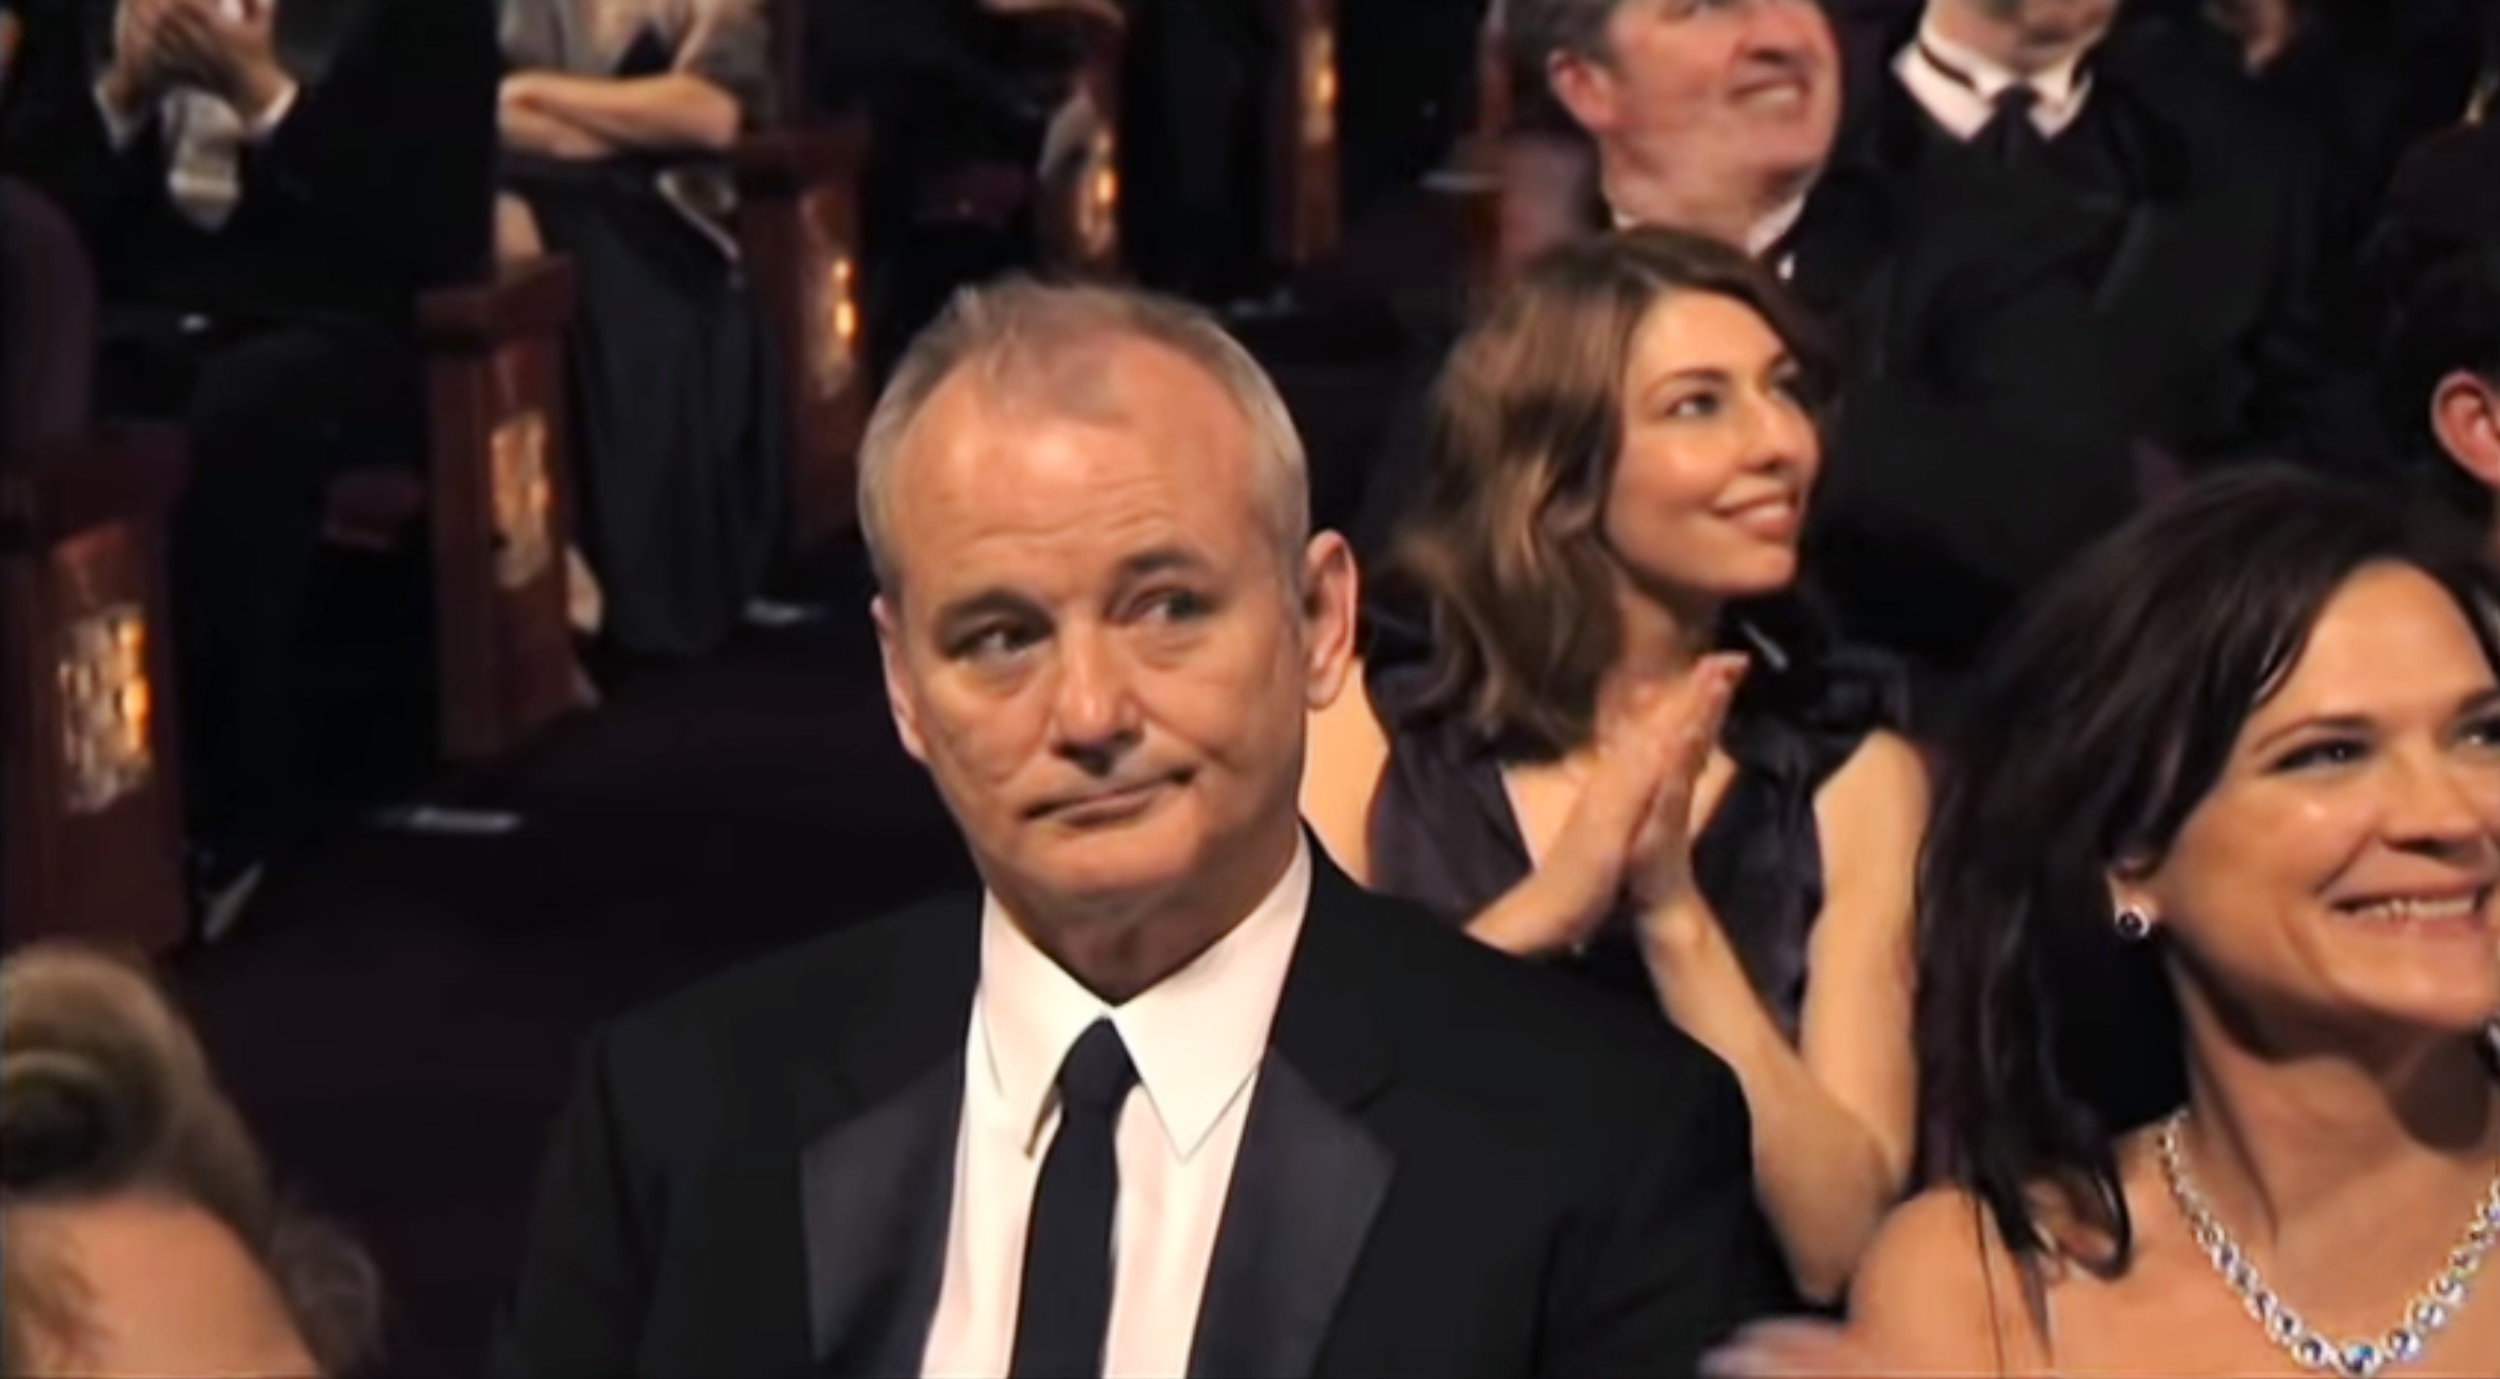 Bill Murray, when the other guy won.